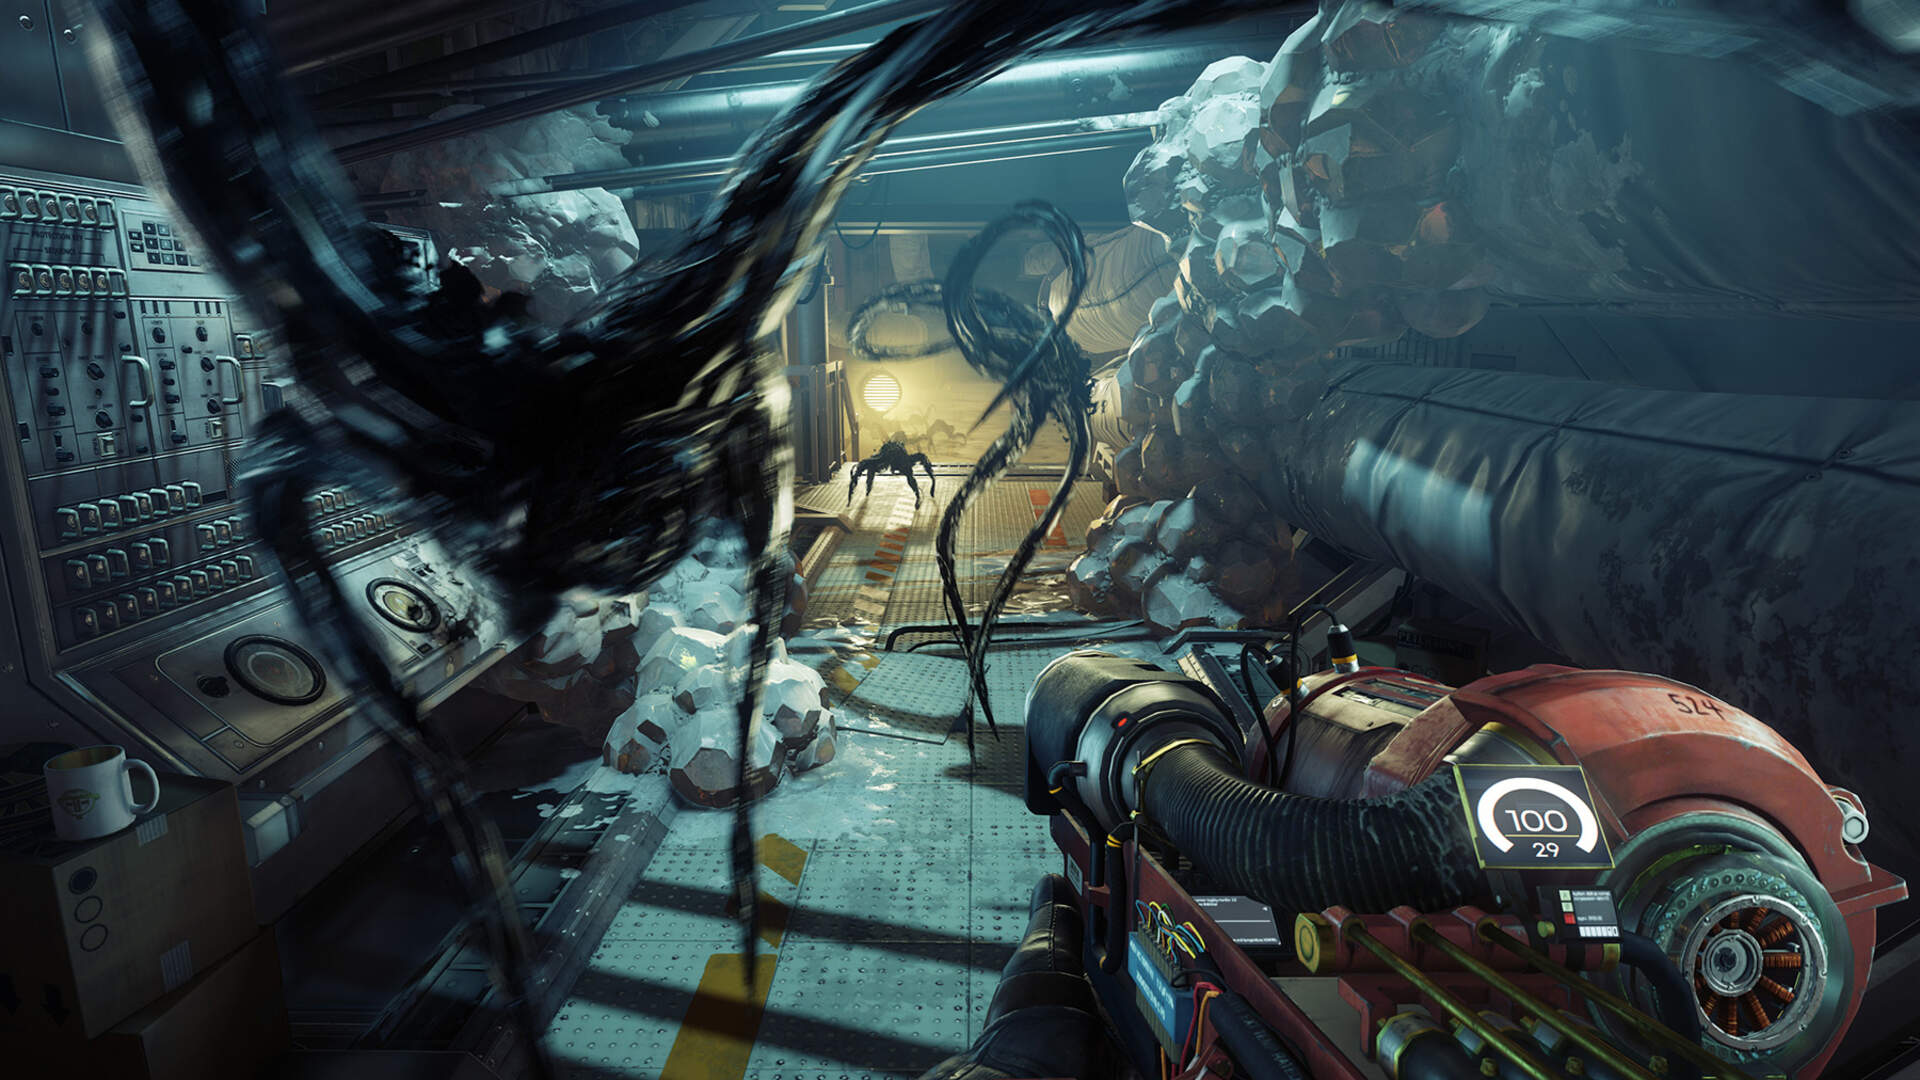 Prey's PS4 Pro Support Patch Brings in More Issues Than It Fixes